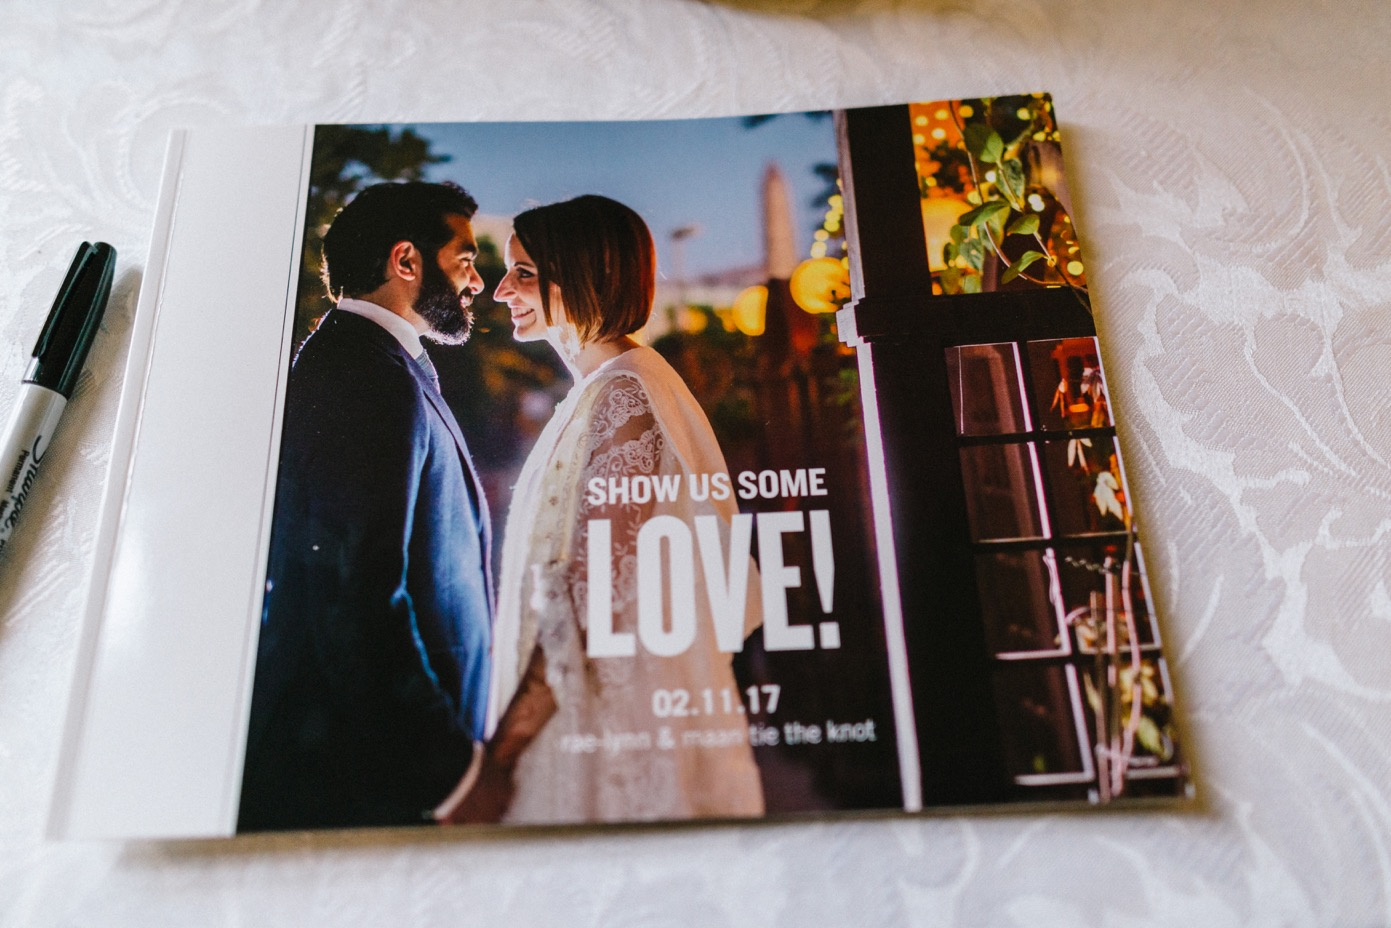 Photo guestbook made by Shutterfly